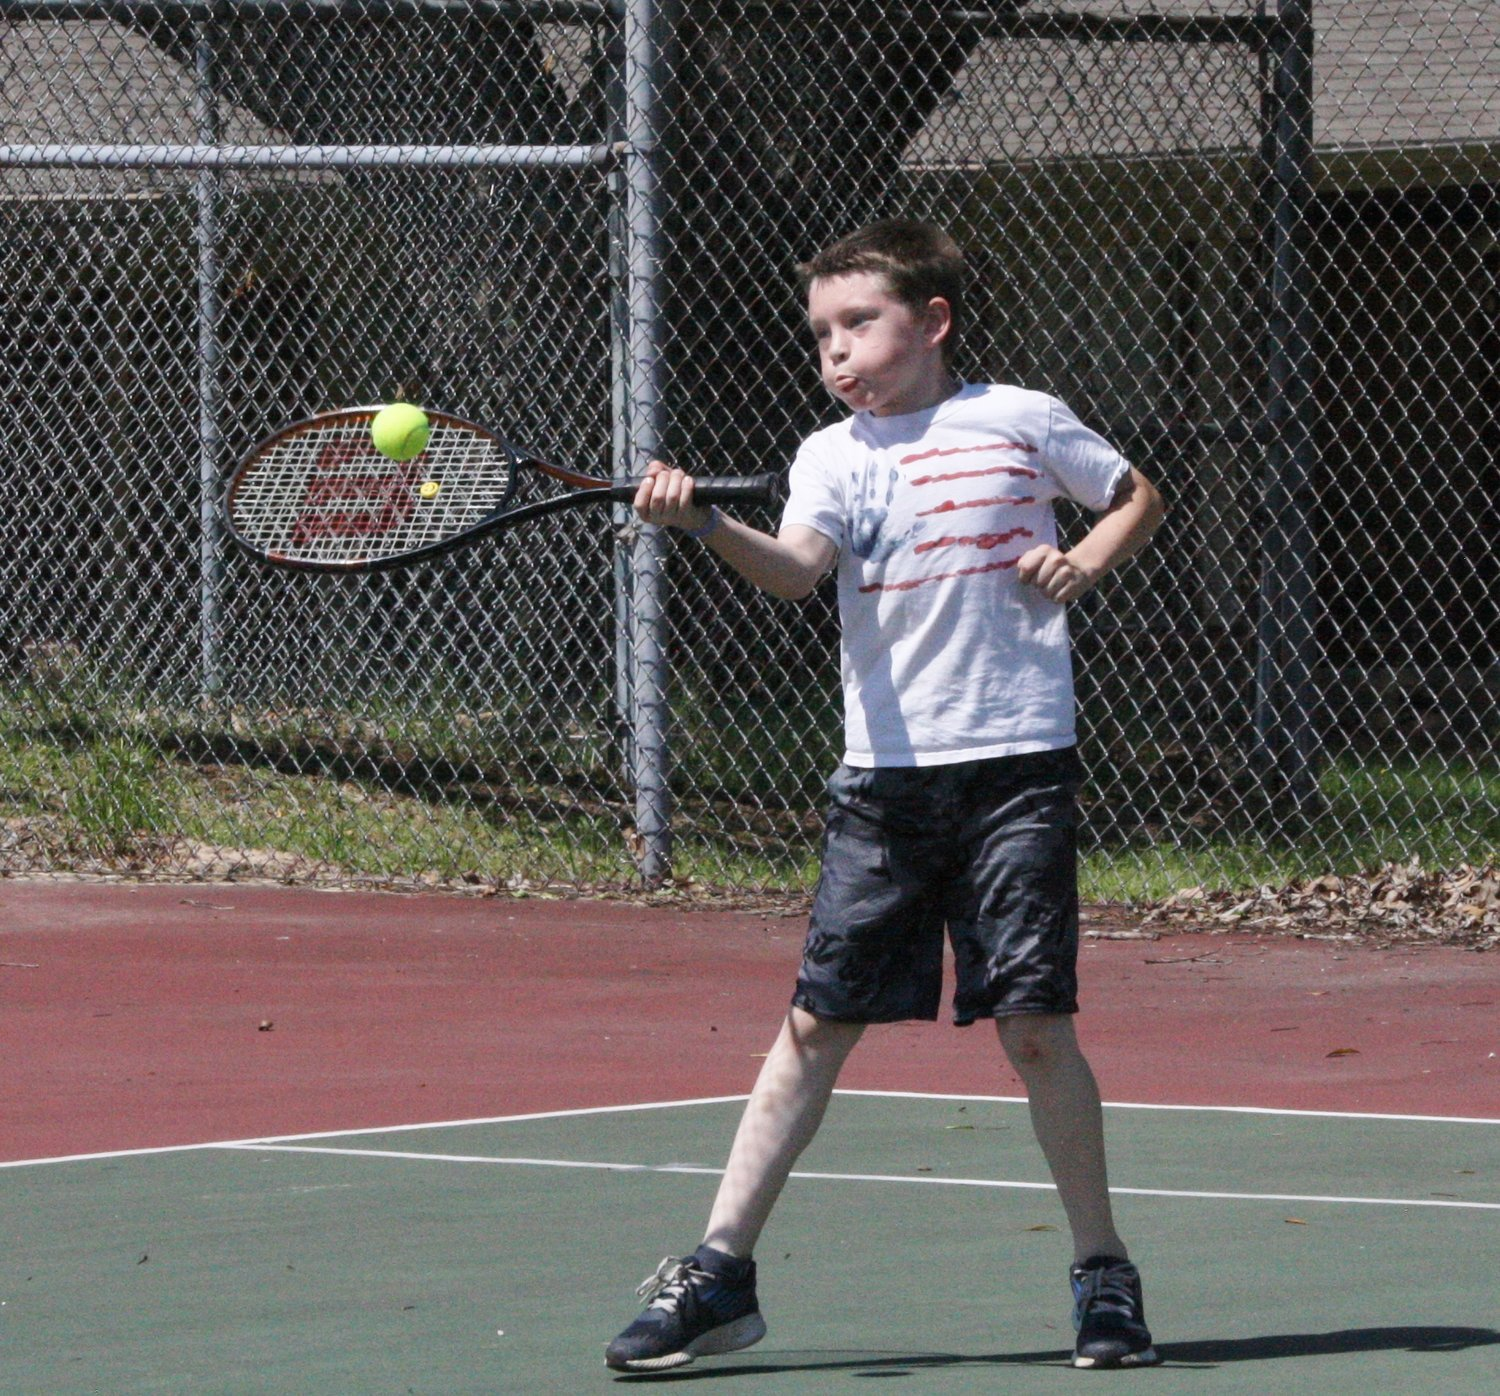 A youngster takes advantage of the great tennis courts available at the Mineola Civic Center grounds.